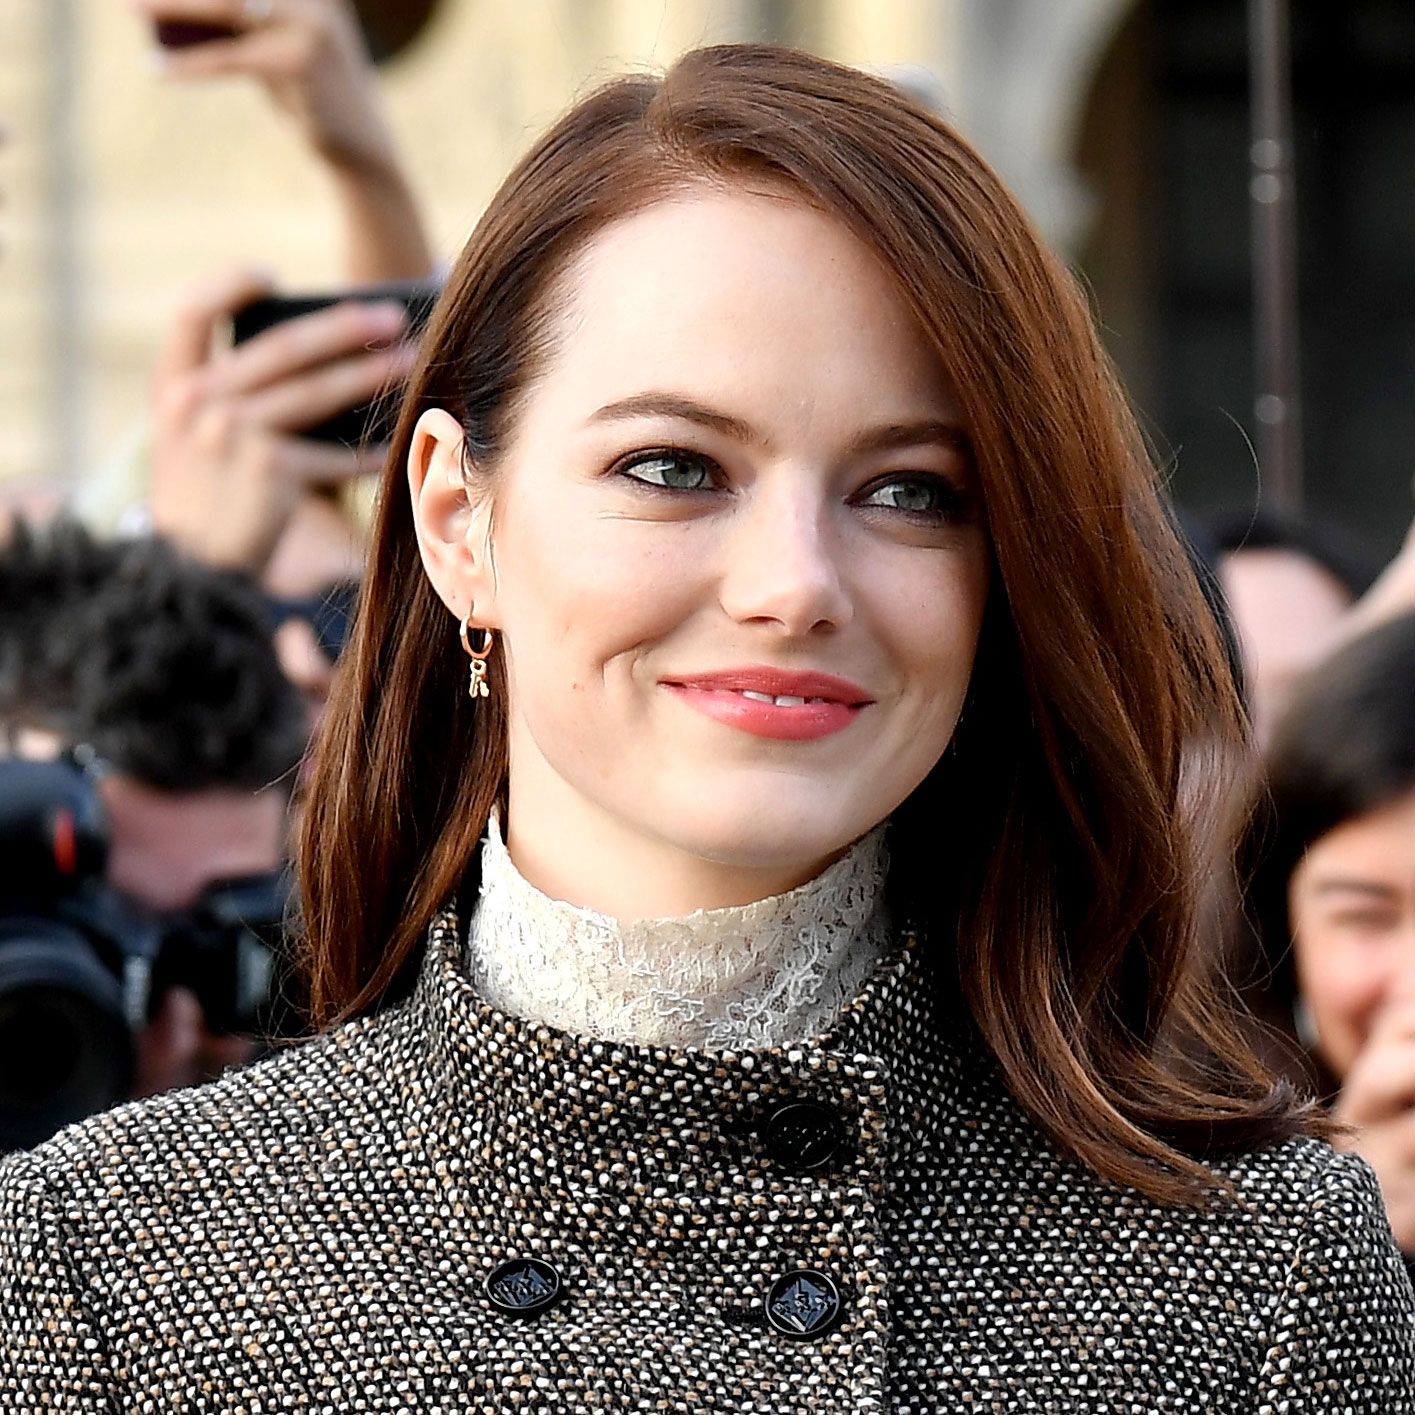 Summer Hair Colors 2019: copper penny highlights, Emma Stone